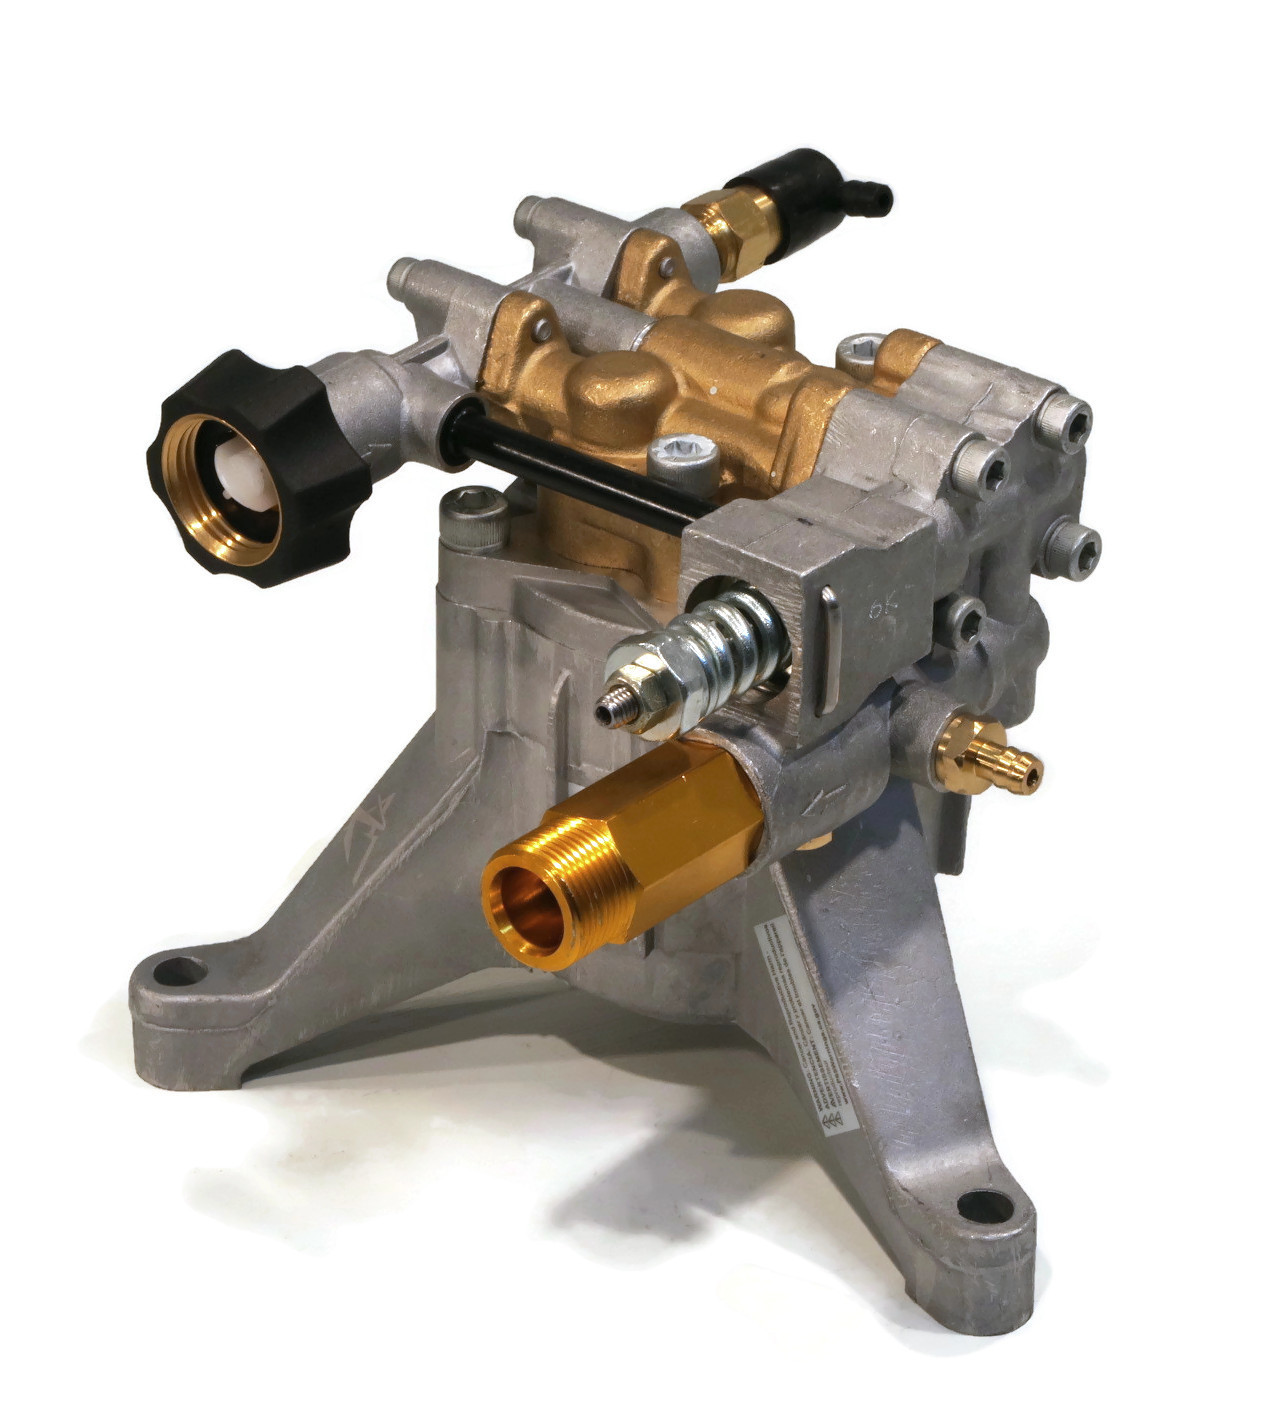 new 3100 psi 2 5 gpm power pressure washer water pump for husky models by the rop shop